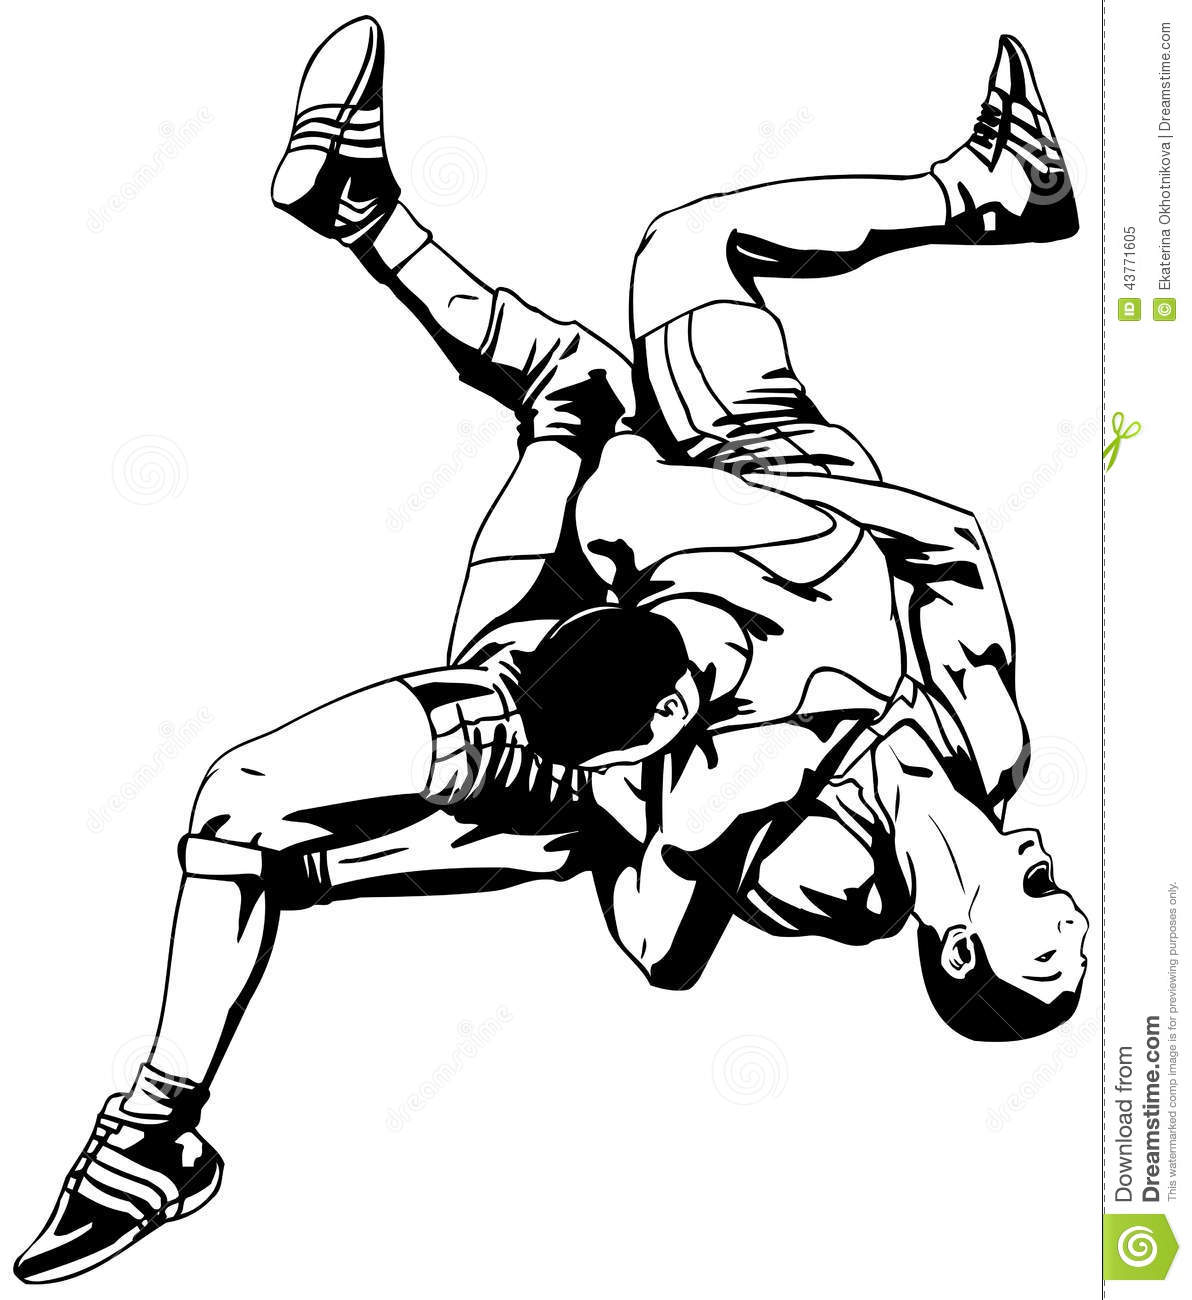 Greco Roman Wrestling Stock Vector Illustration Of Arts